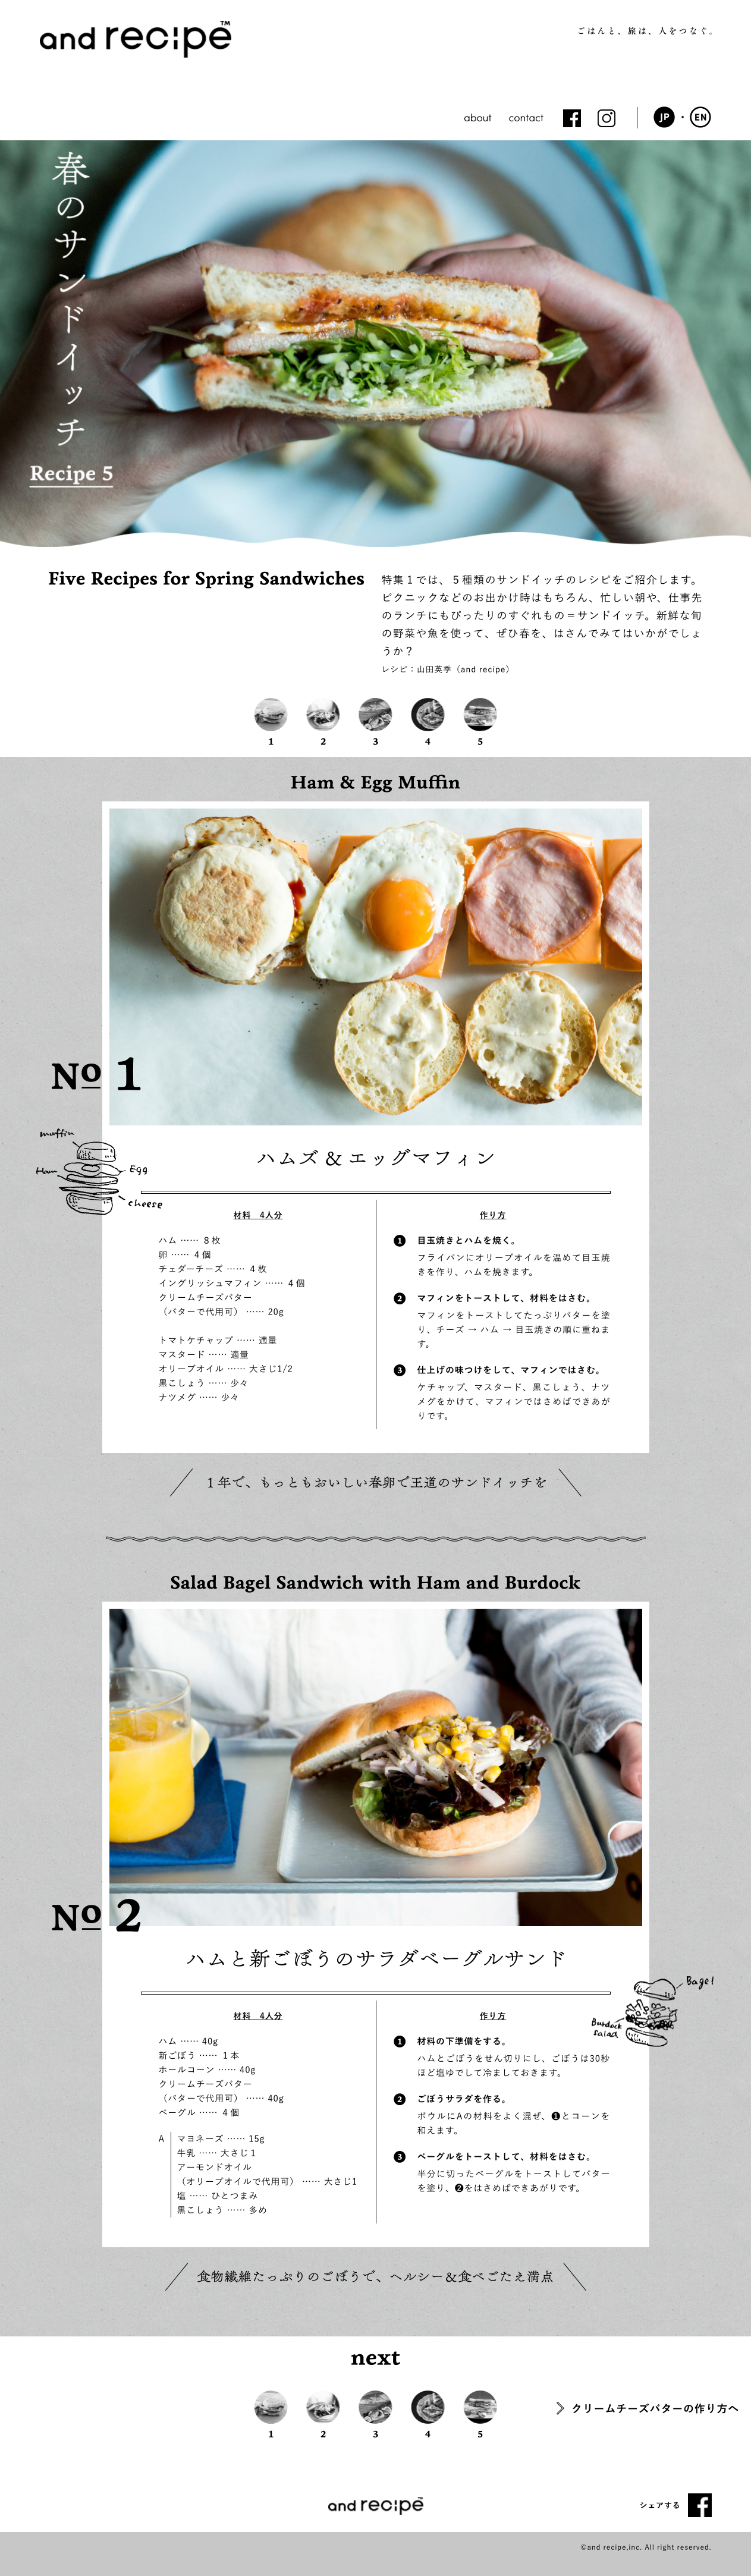 and recipe web magazine 3 キタダデザイン food styling 2